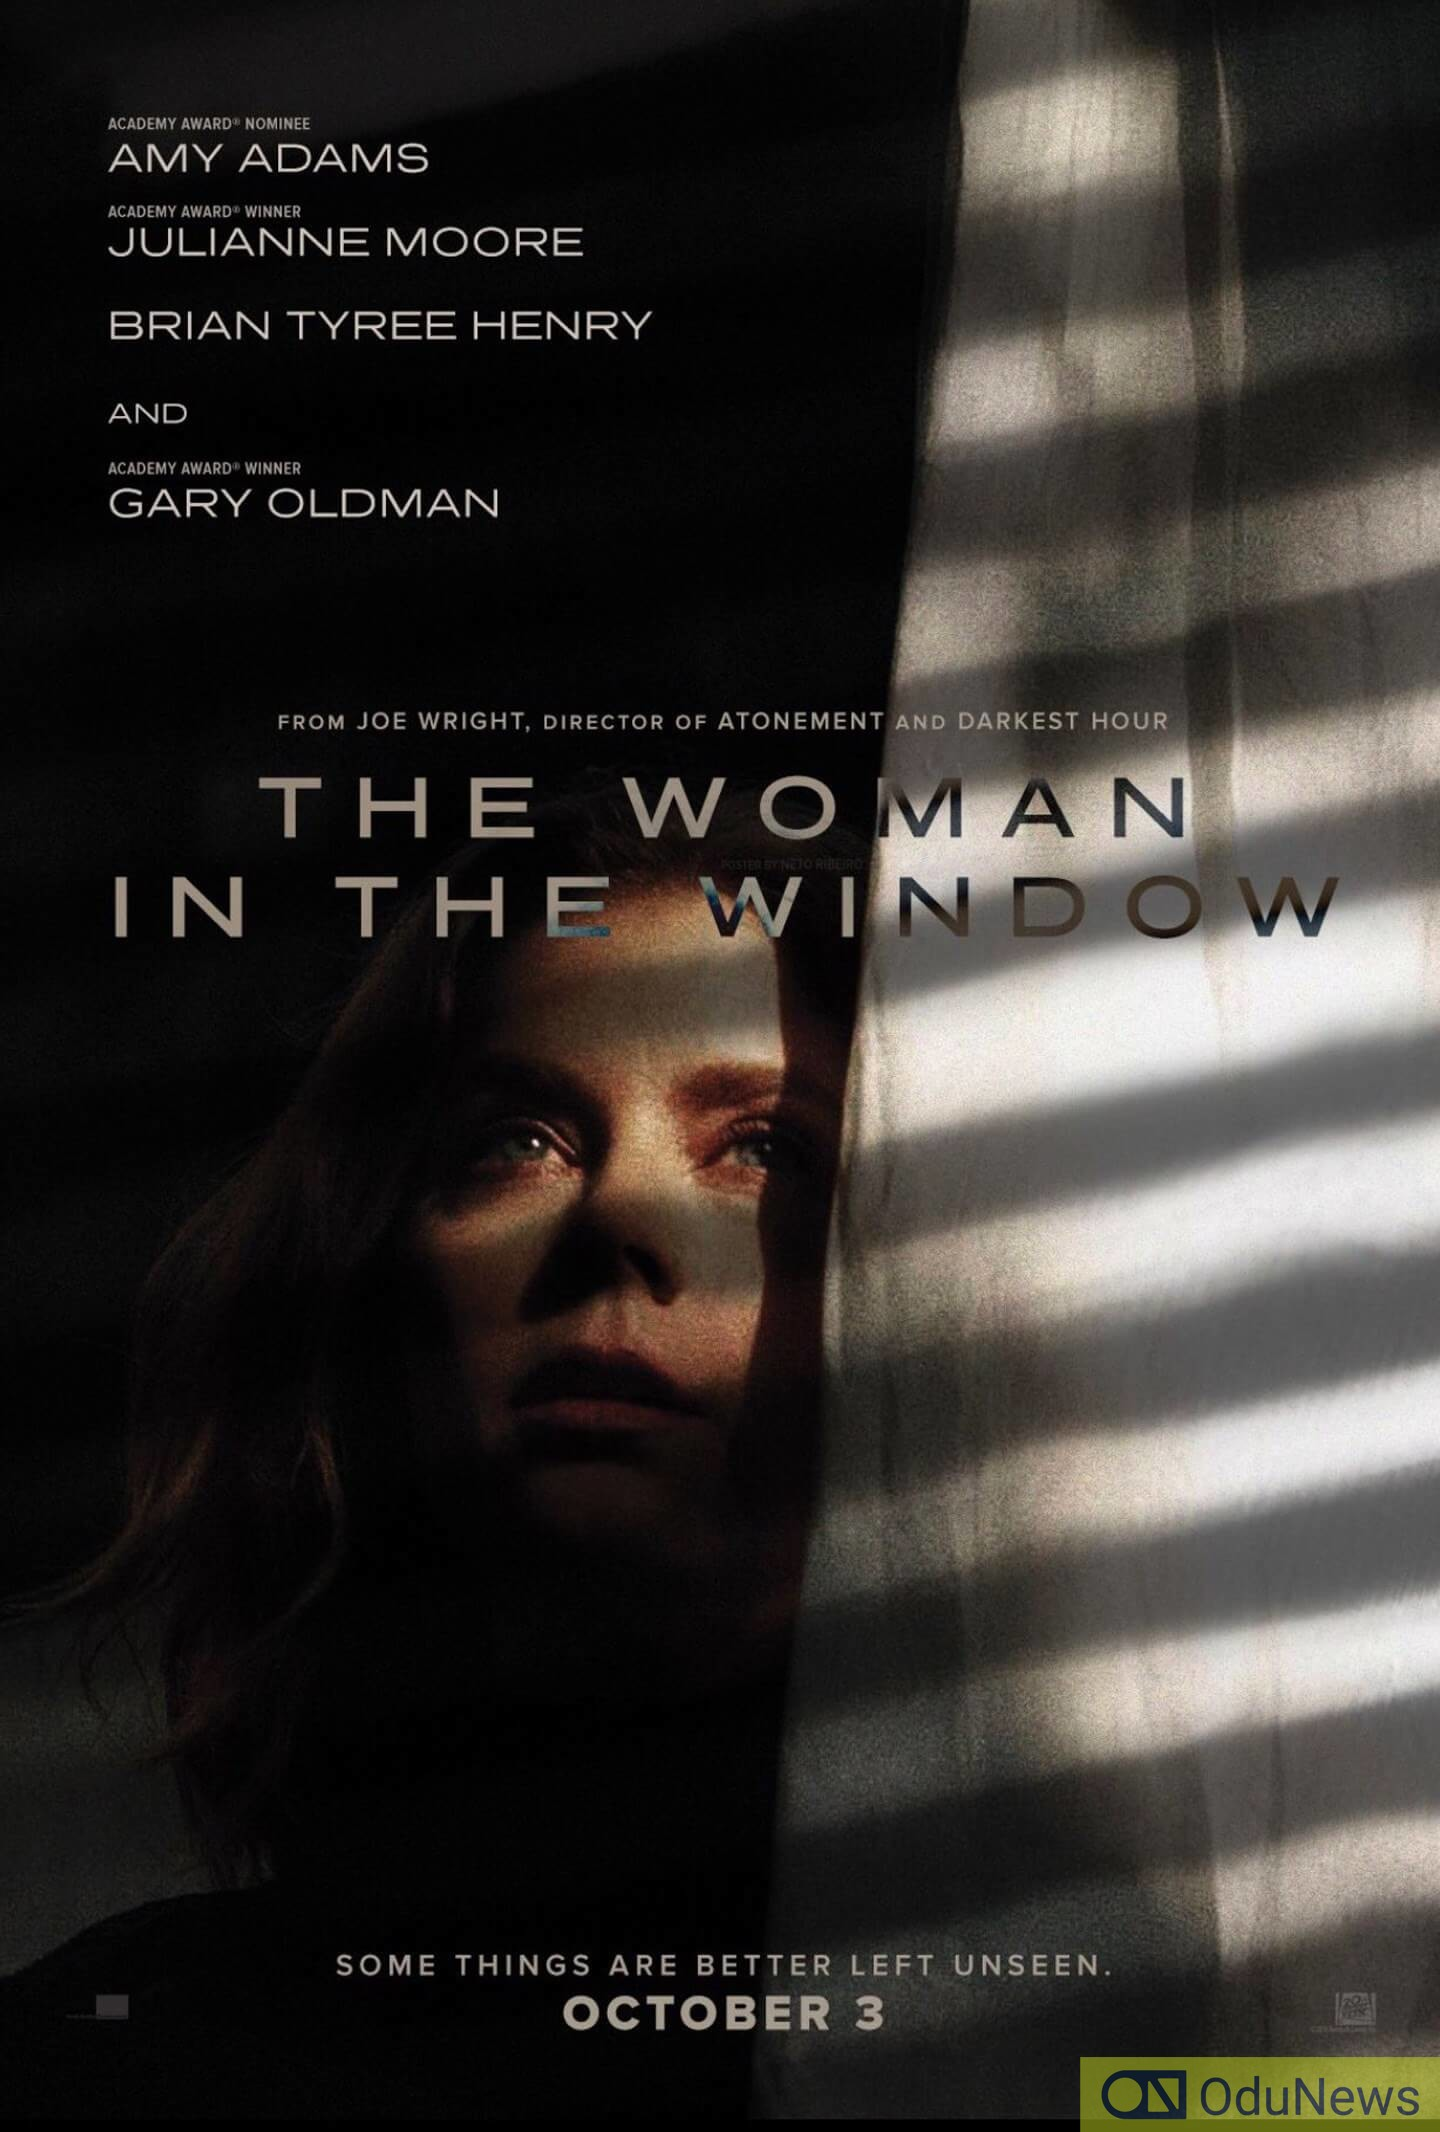 The Woman in the Window is stars Amy Adams in the title role